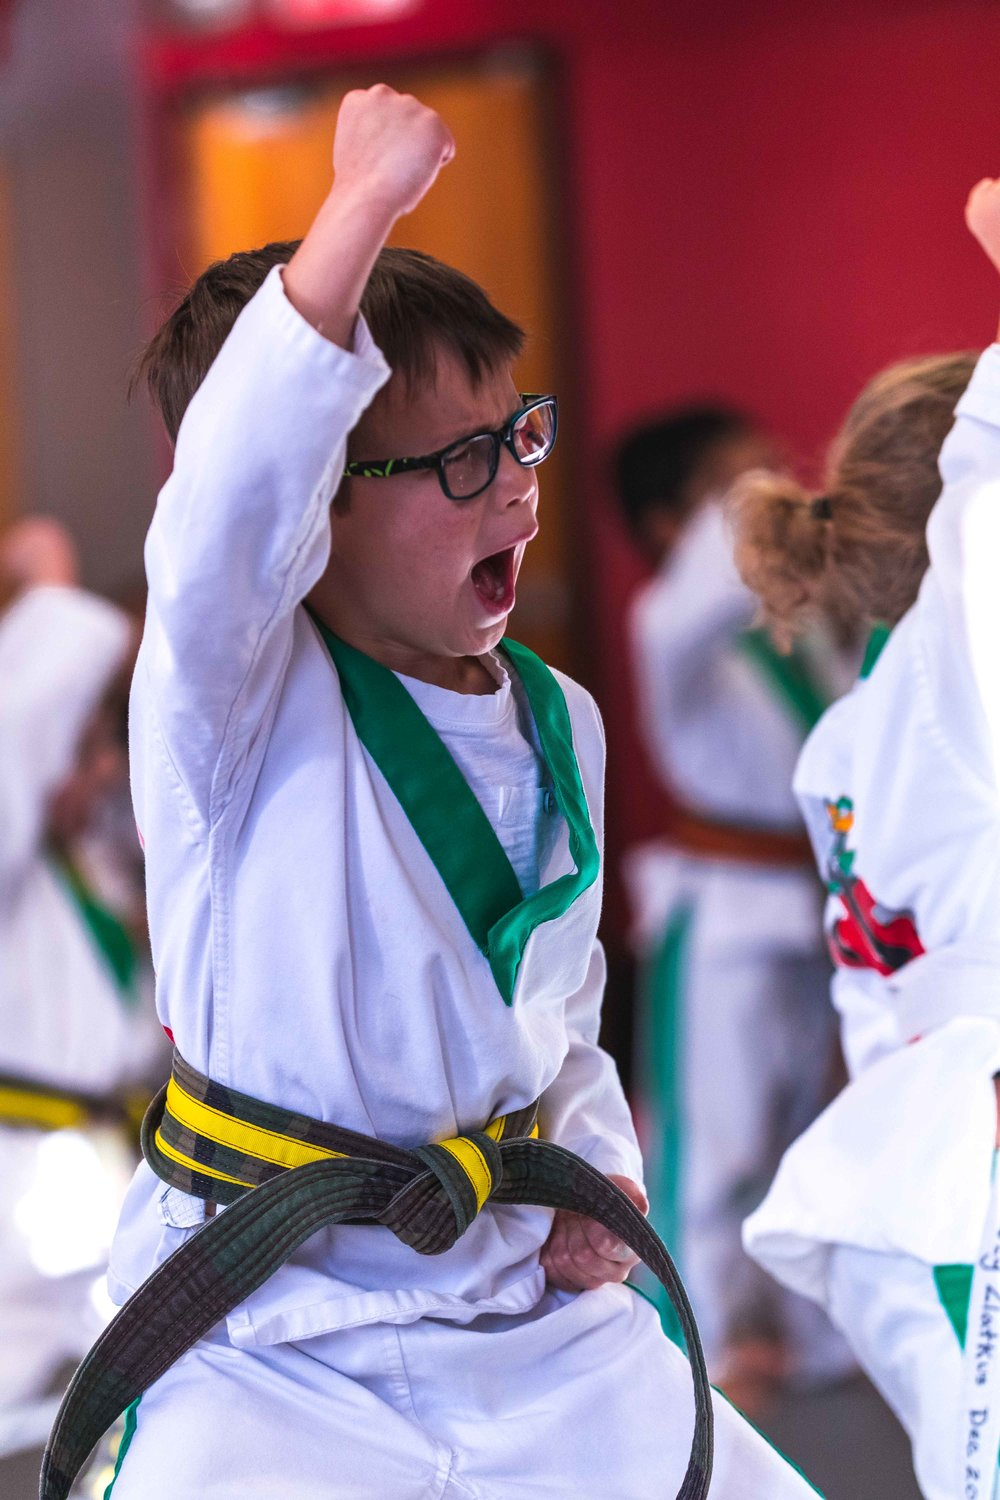 Callahans Karate Family Martial Arts Studio Bedford MA Classes for Kids teenagers and adults in Bedford MA Mini Dragon Program for 3 year olds.jpg